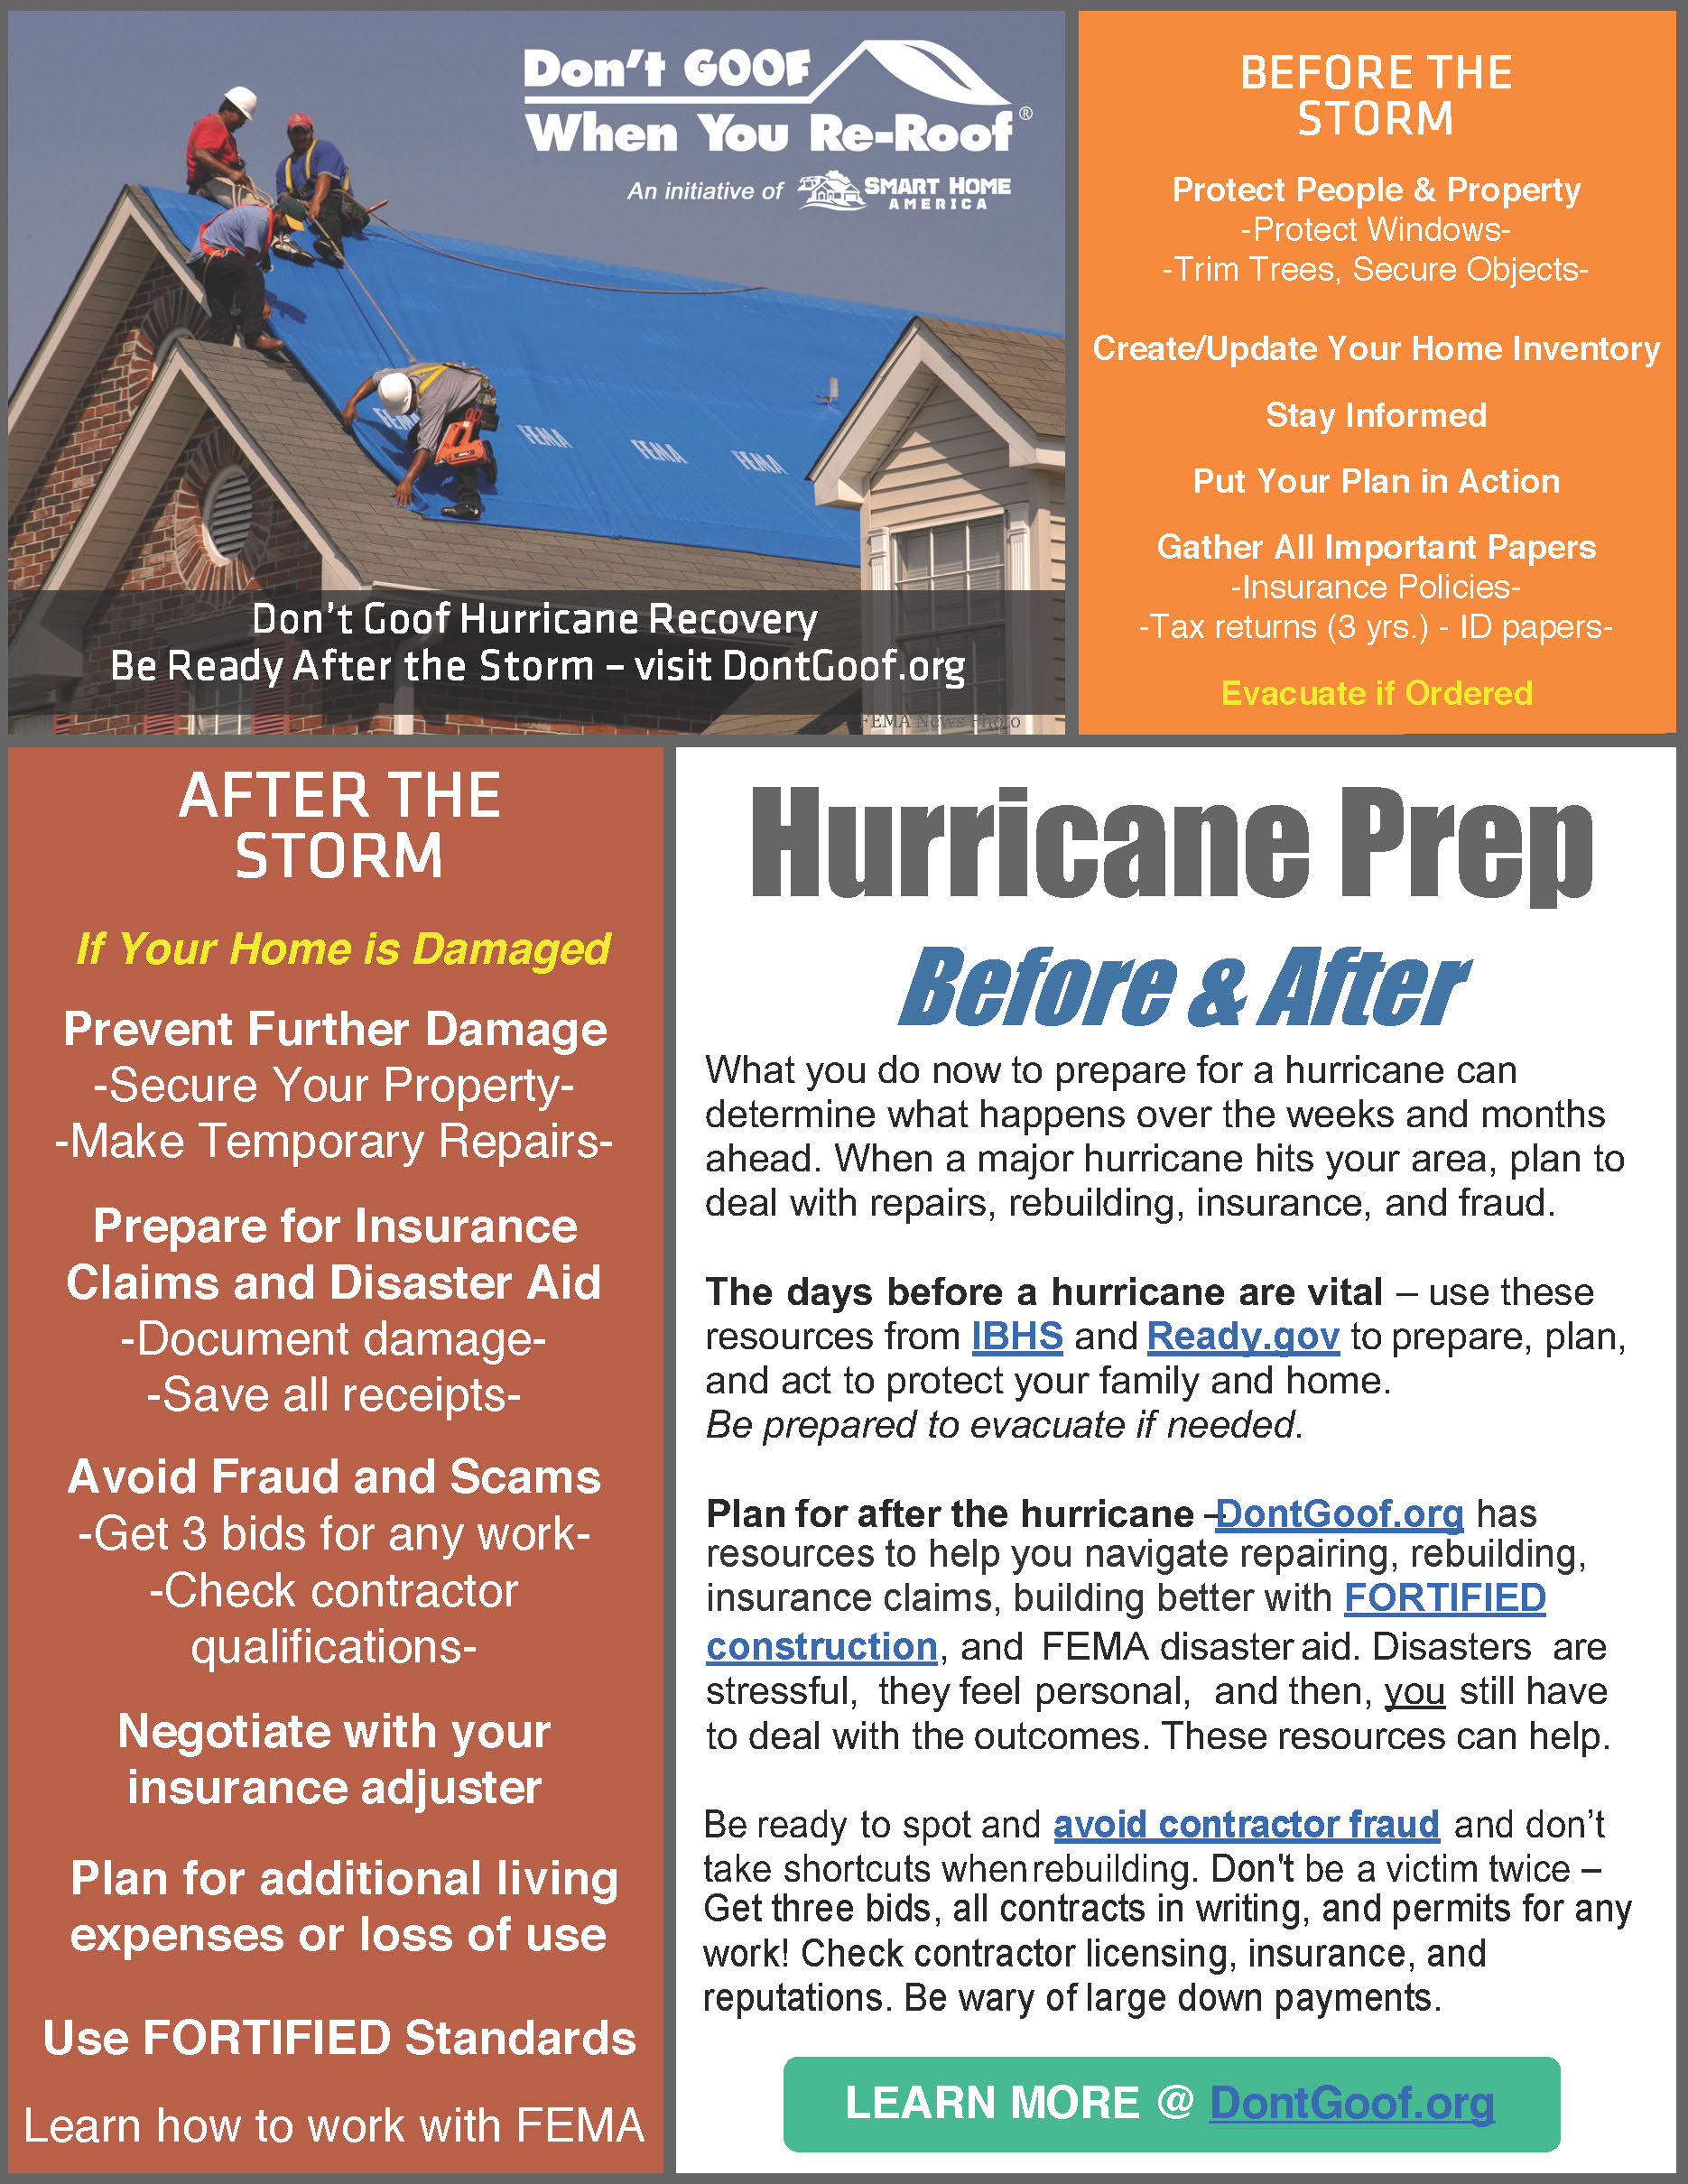 Don't Goof Hurricane Recovery. Be Ready After the Storm – visit DontGoof.org What you do now to prepare for a hurricane can determine what happens over the weeks and months ahead. When a major hurricane hits your area, plan to deal with repairs, rebuilding, insurance, and fraud.